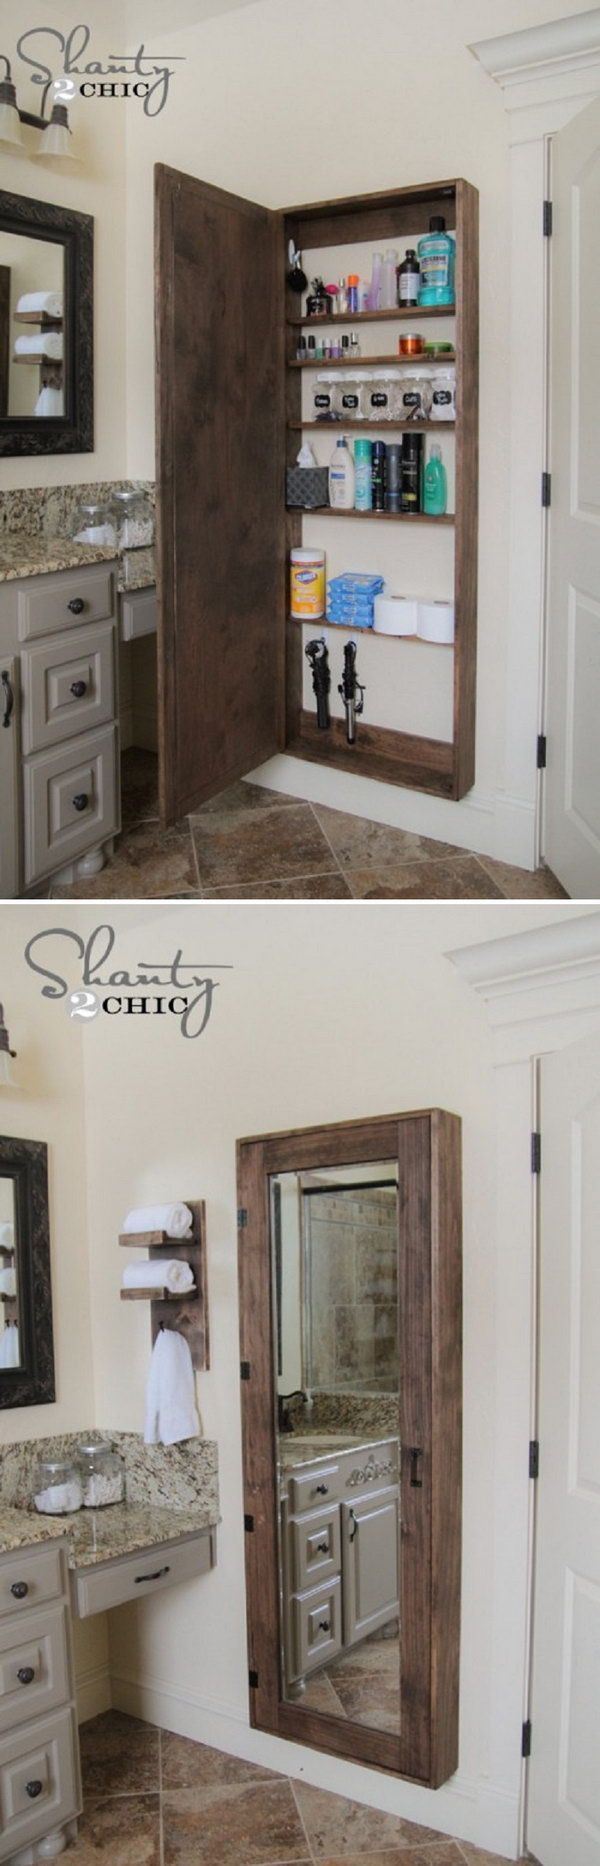 A big bathroom storage case behind the mirror to hold all the goodies. http://hative.com/clever-bathroom-storage-ideas/